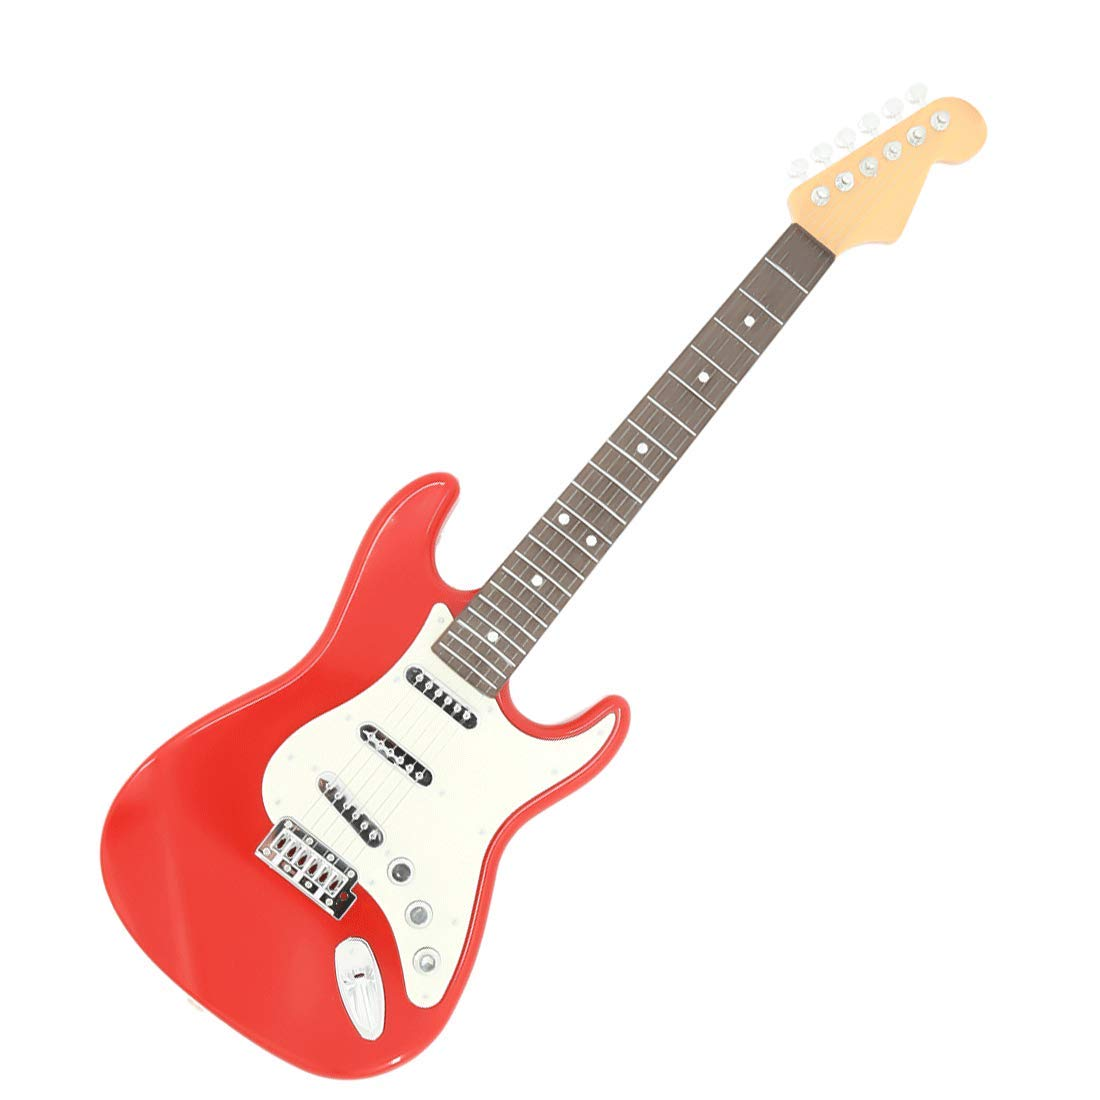 PeleusTech® Kids Electric Guitar, Children Simulation Music Guitar Cool Musical Instruments Educational Toy - (Red)